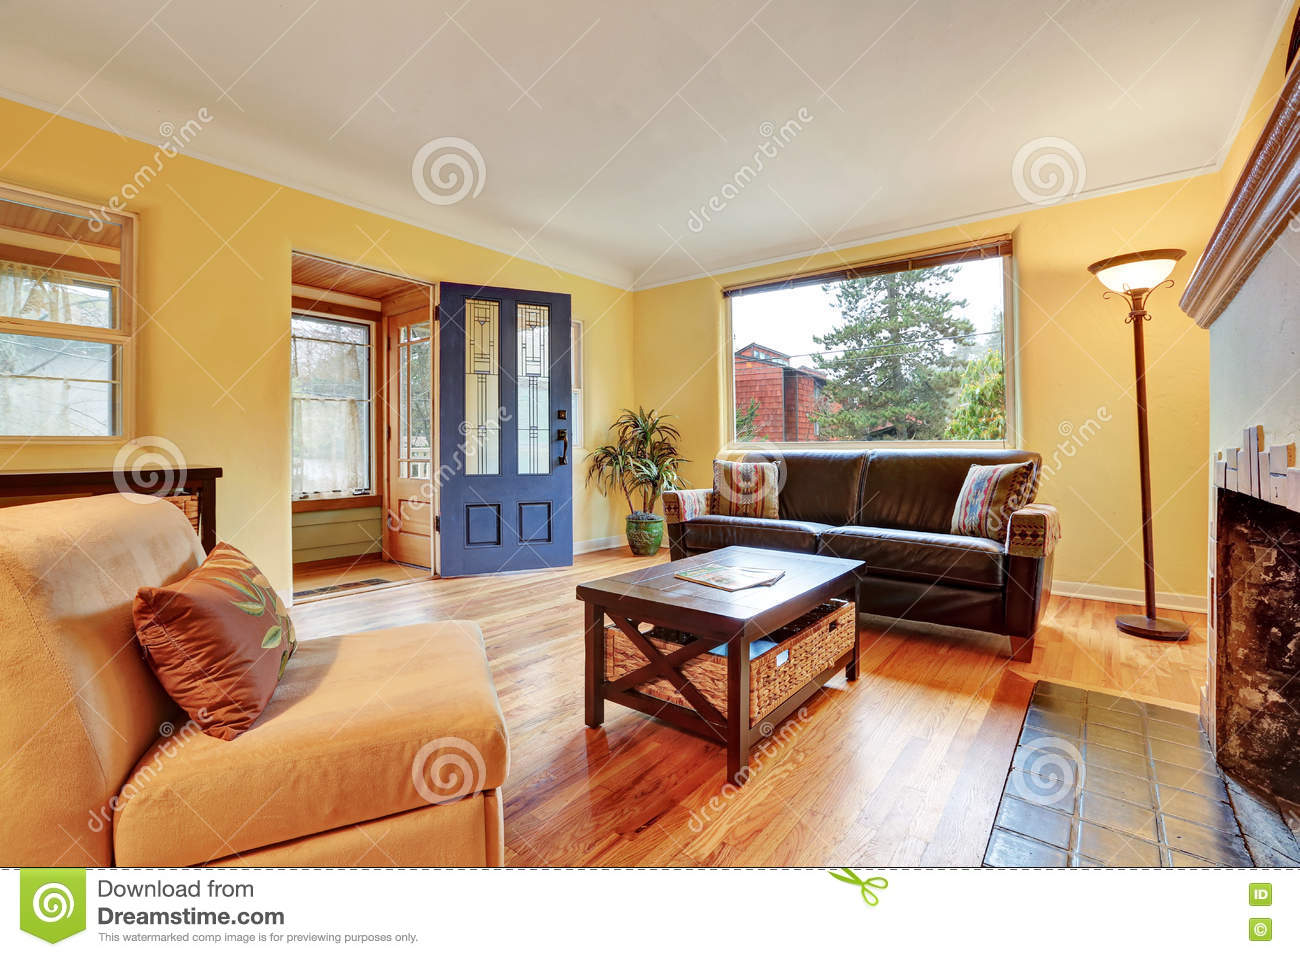 cozy living room colors gray and white ideas interior with warm yellow walls stock photo image